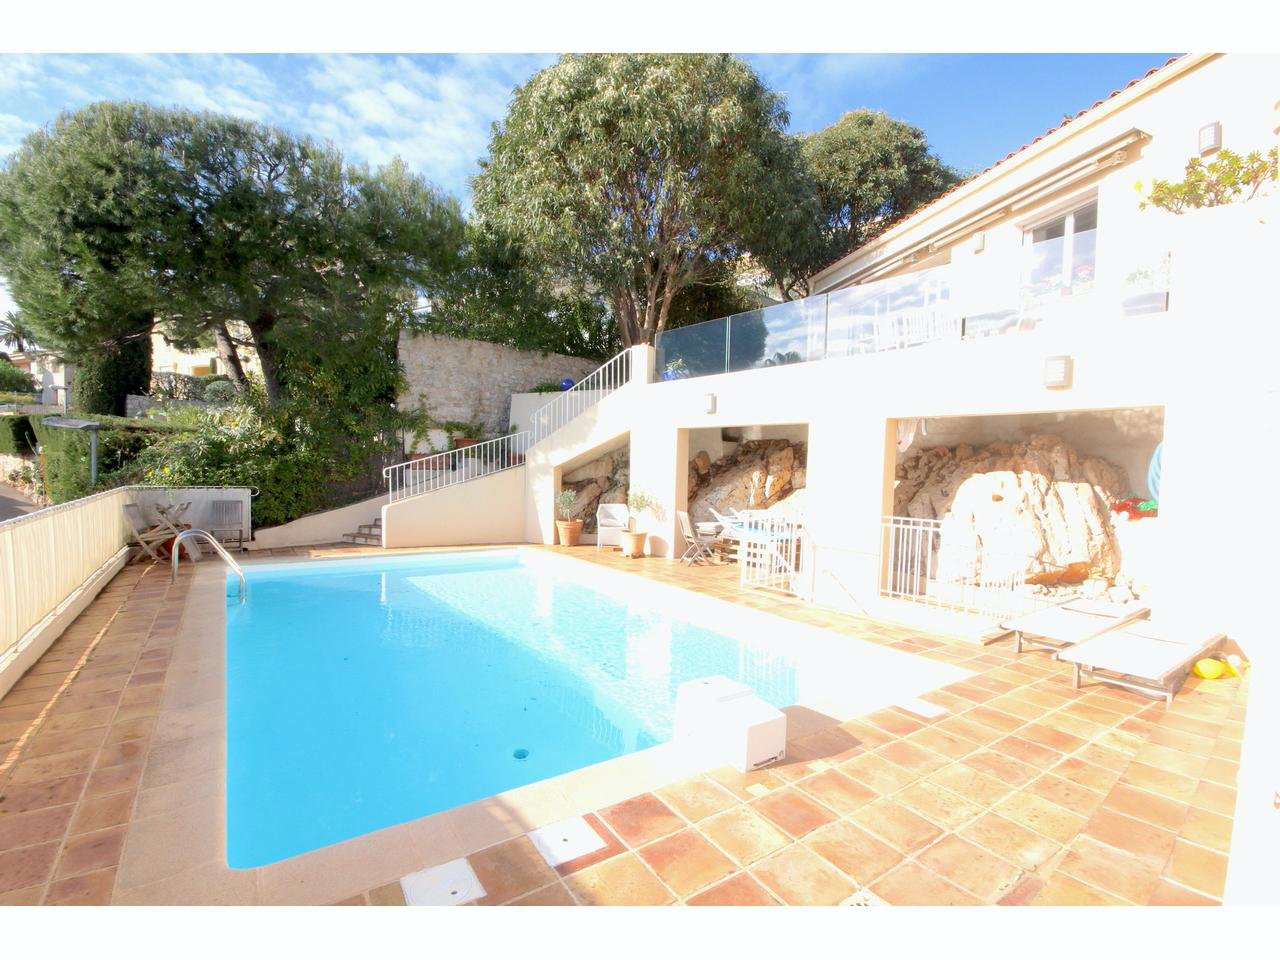 Villa with independent studio and pool